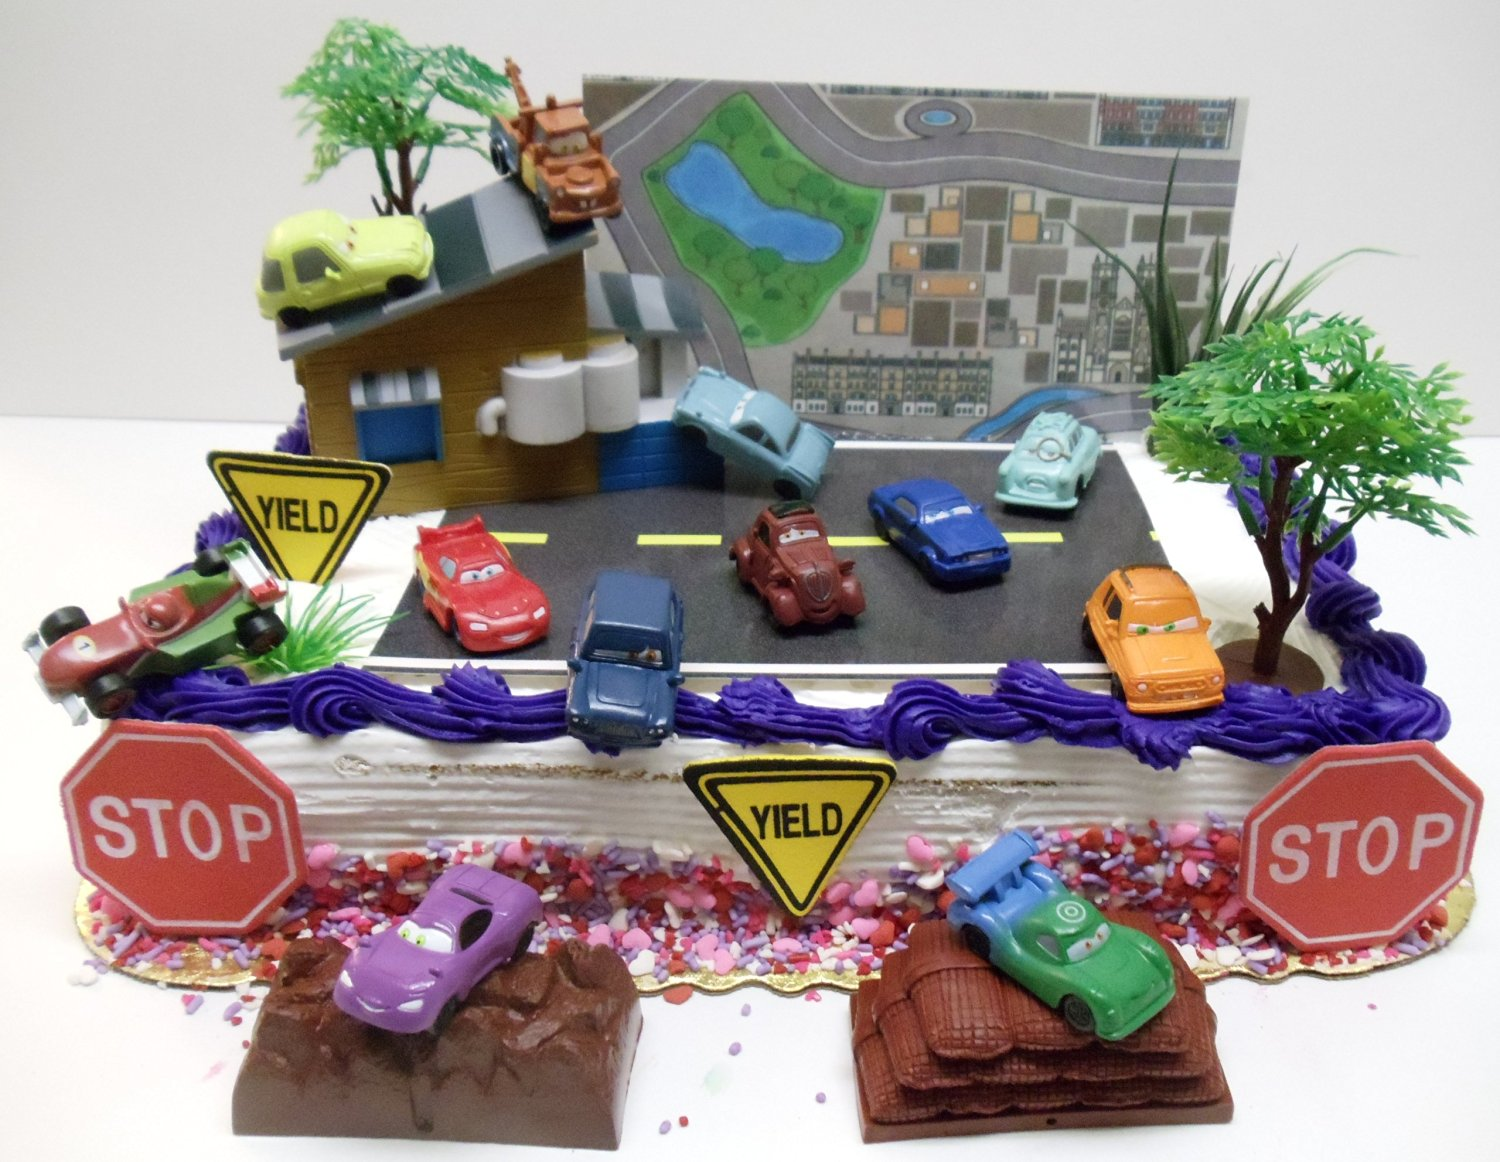 "Cars 2 Birthday Cake Topper Set Featuring 1.5"" Cake Toppers of Lightning McQueen, Tow Mater, Lemons, Finn McMissile, Francesco Bernoulli, Holley Shiftwell, Rod Redline, Uncle Topolino, Professor Z and Other Decorative Themed Pieces - Cake Topper Set Includes All Items Shown"